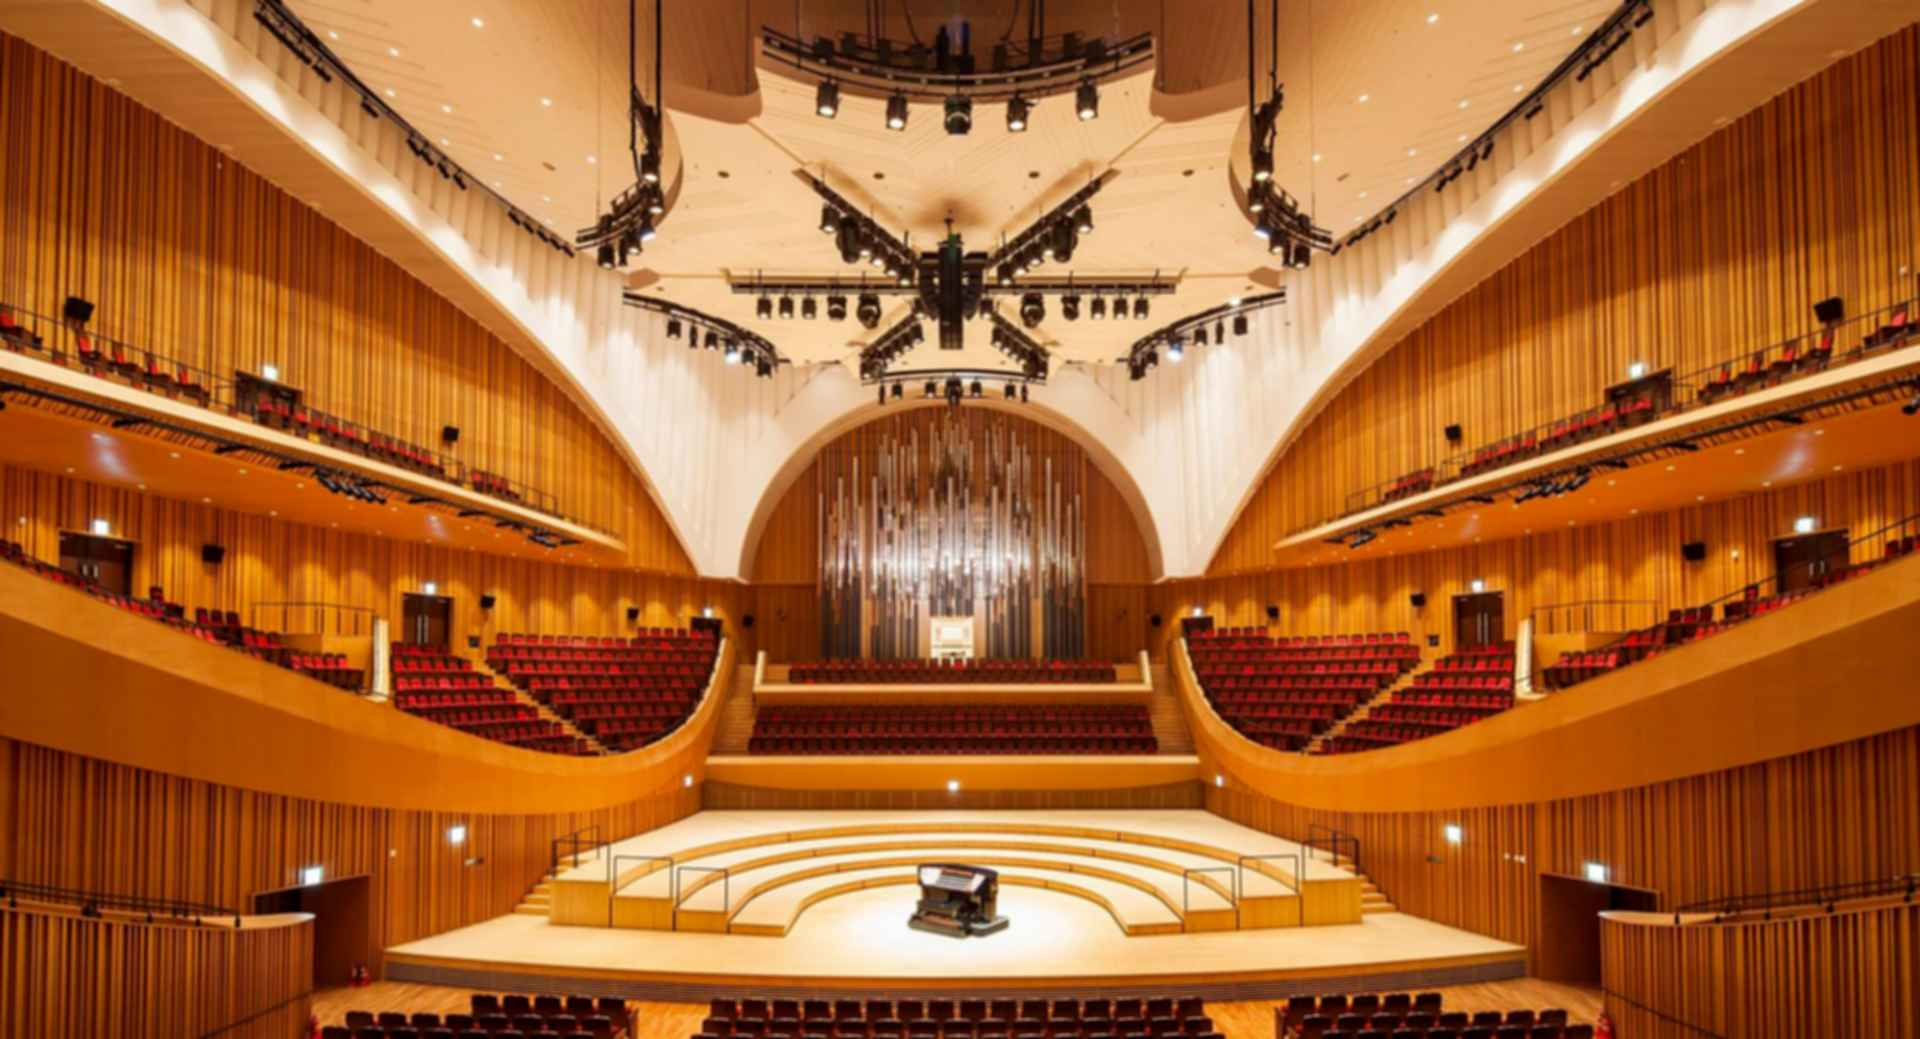 Lotte Concert Hall - Interior